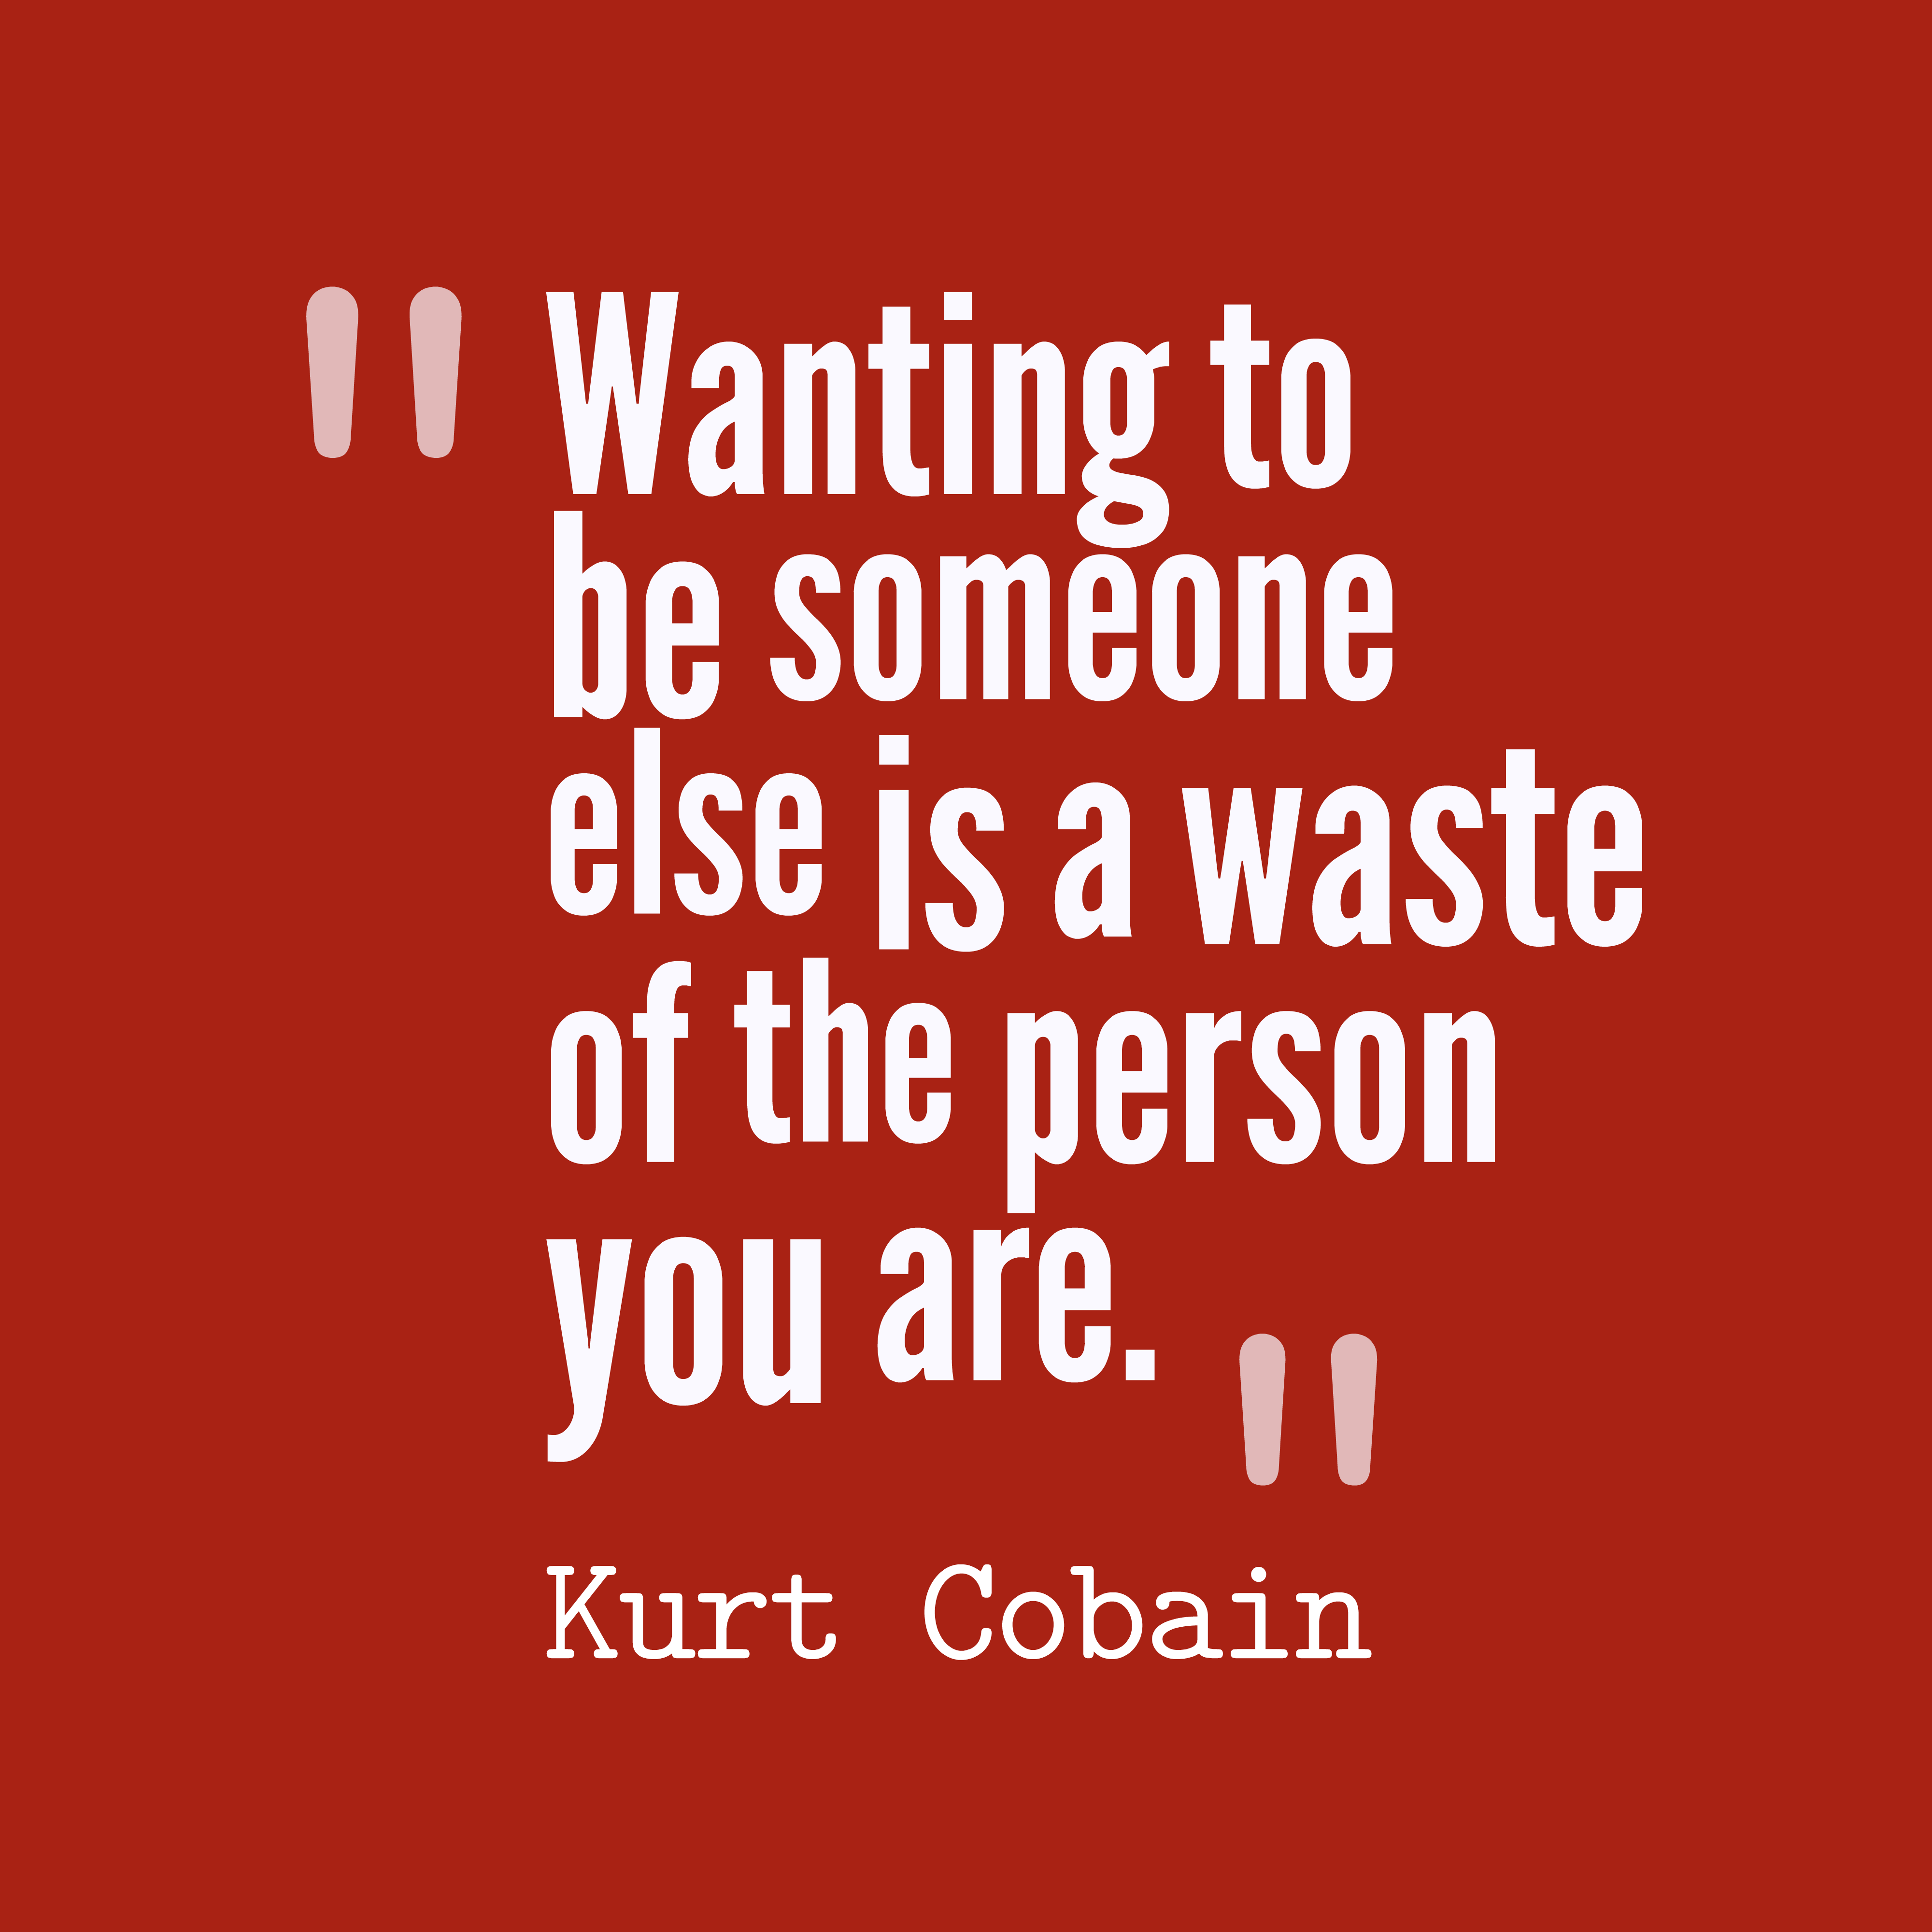 Quotes about Wanting someone (66 quotes)